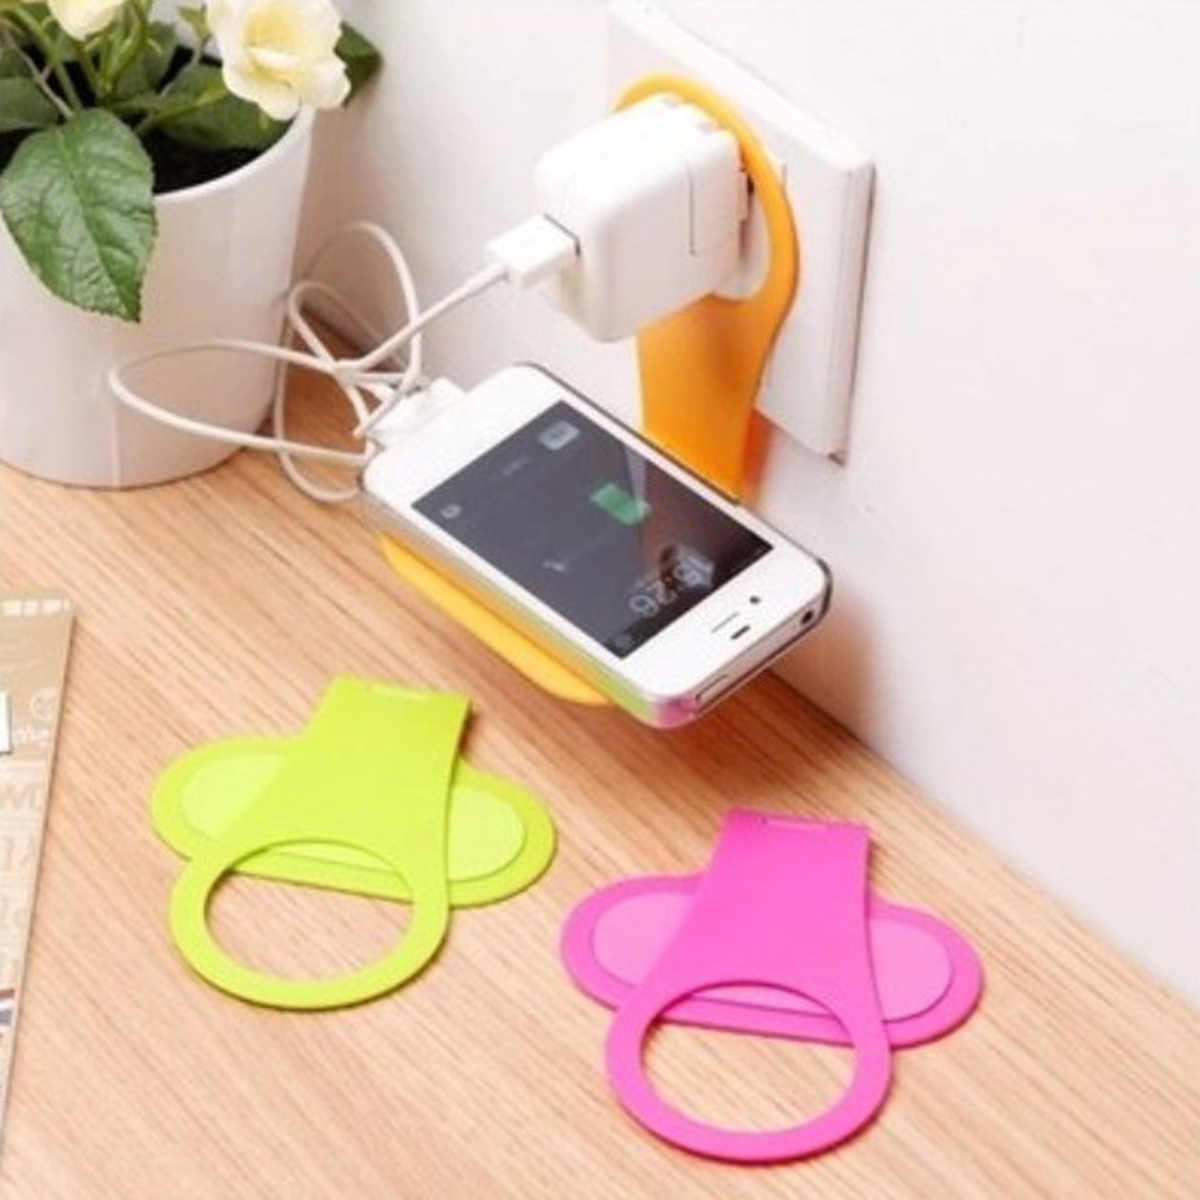 SOONHUA Portable Foldable Phone Holder For Wall Charging Support Hanger Universal Mobile Phone Holder Random Color